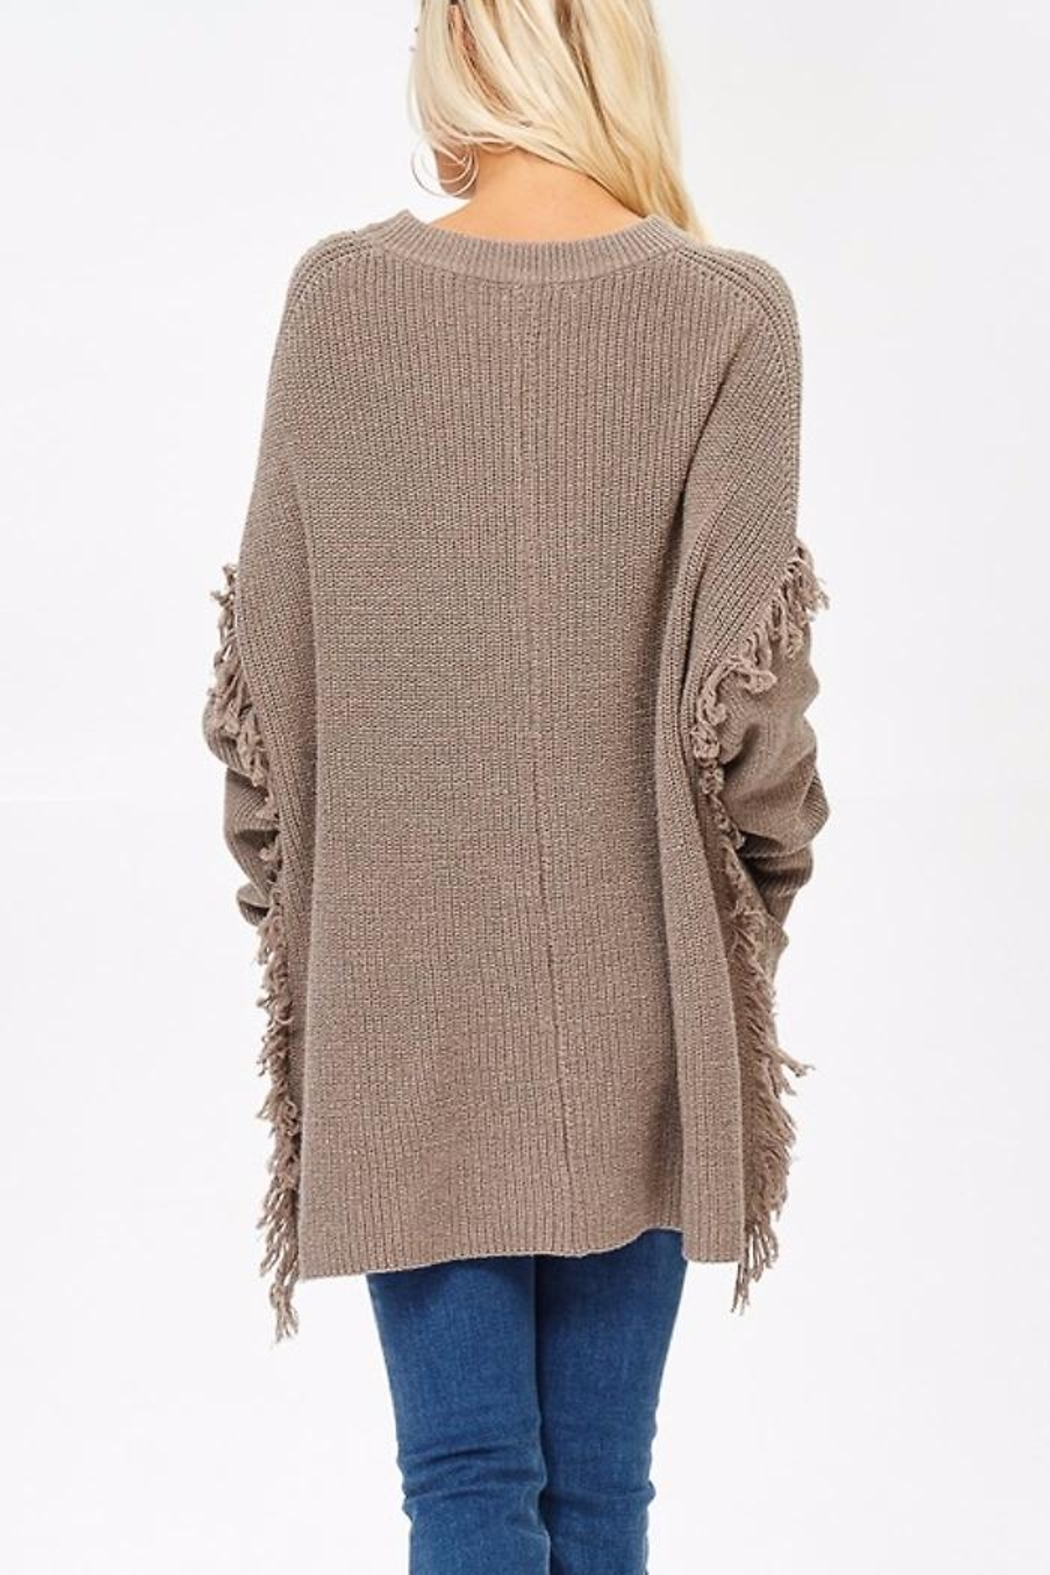 People Outfitter Ella's Long Sweater - Side Cropped Image